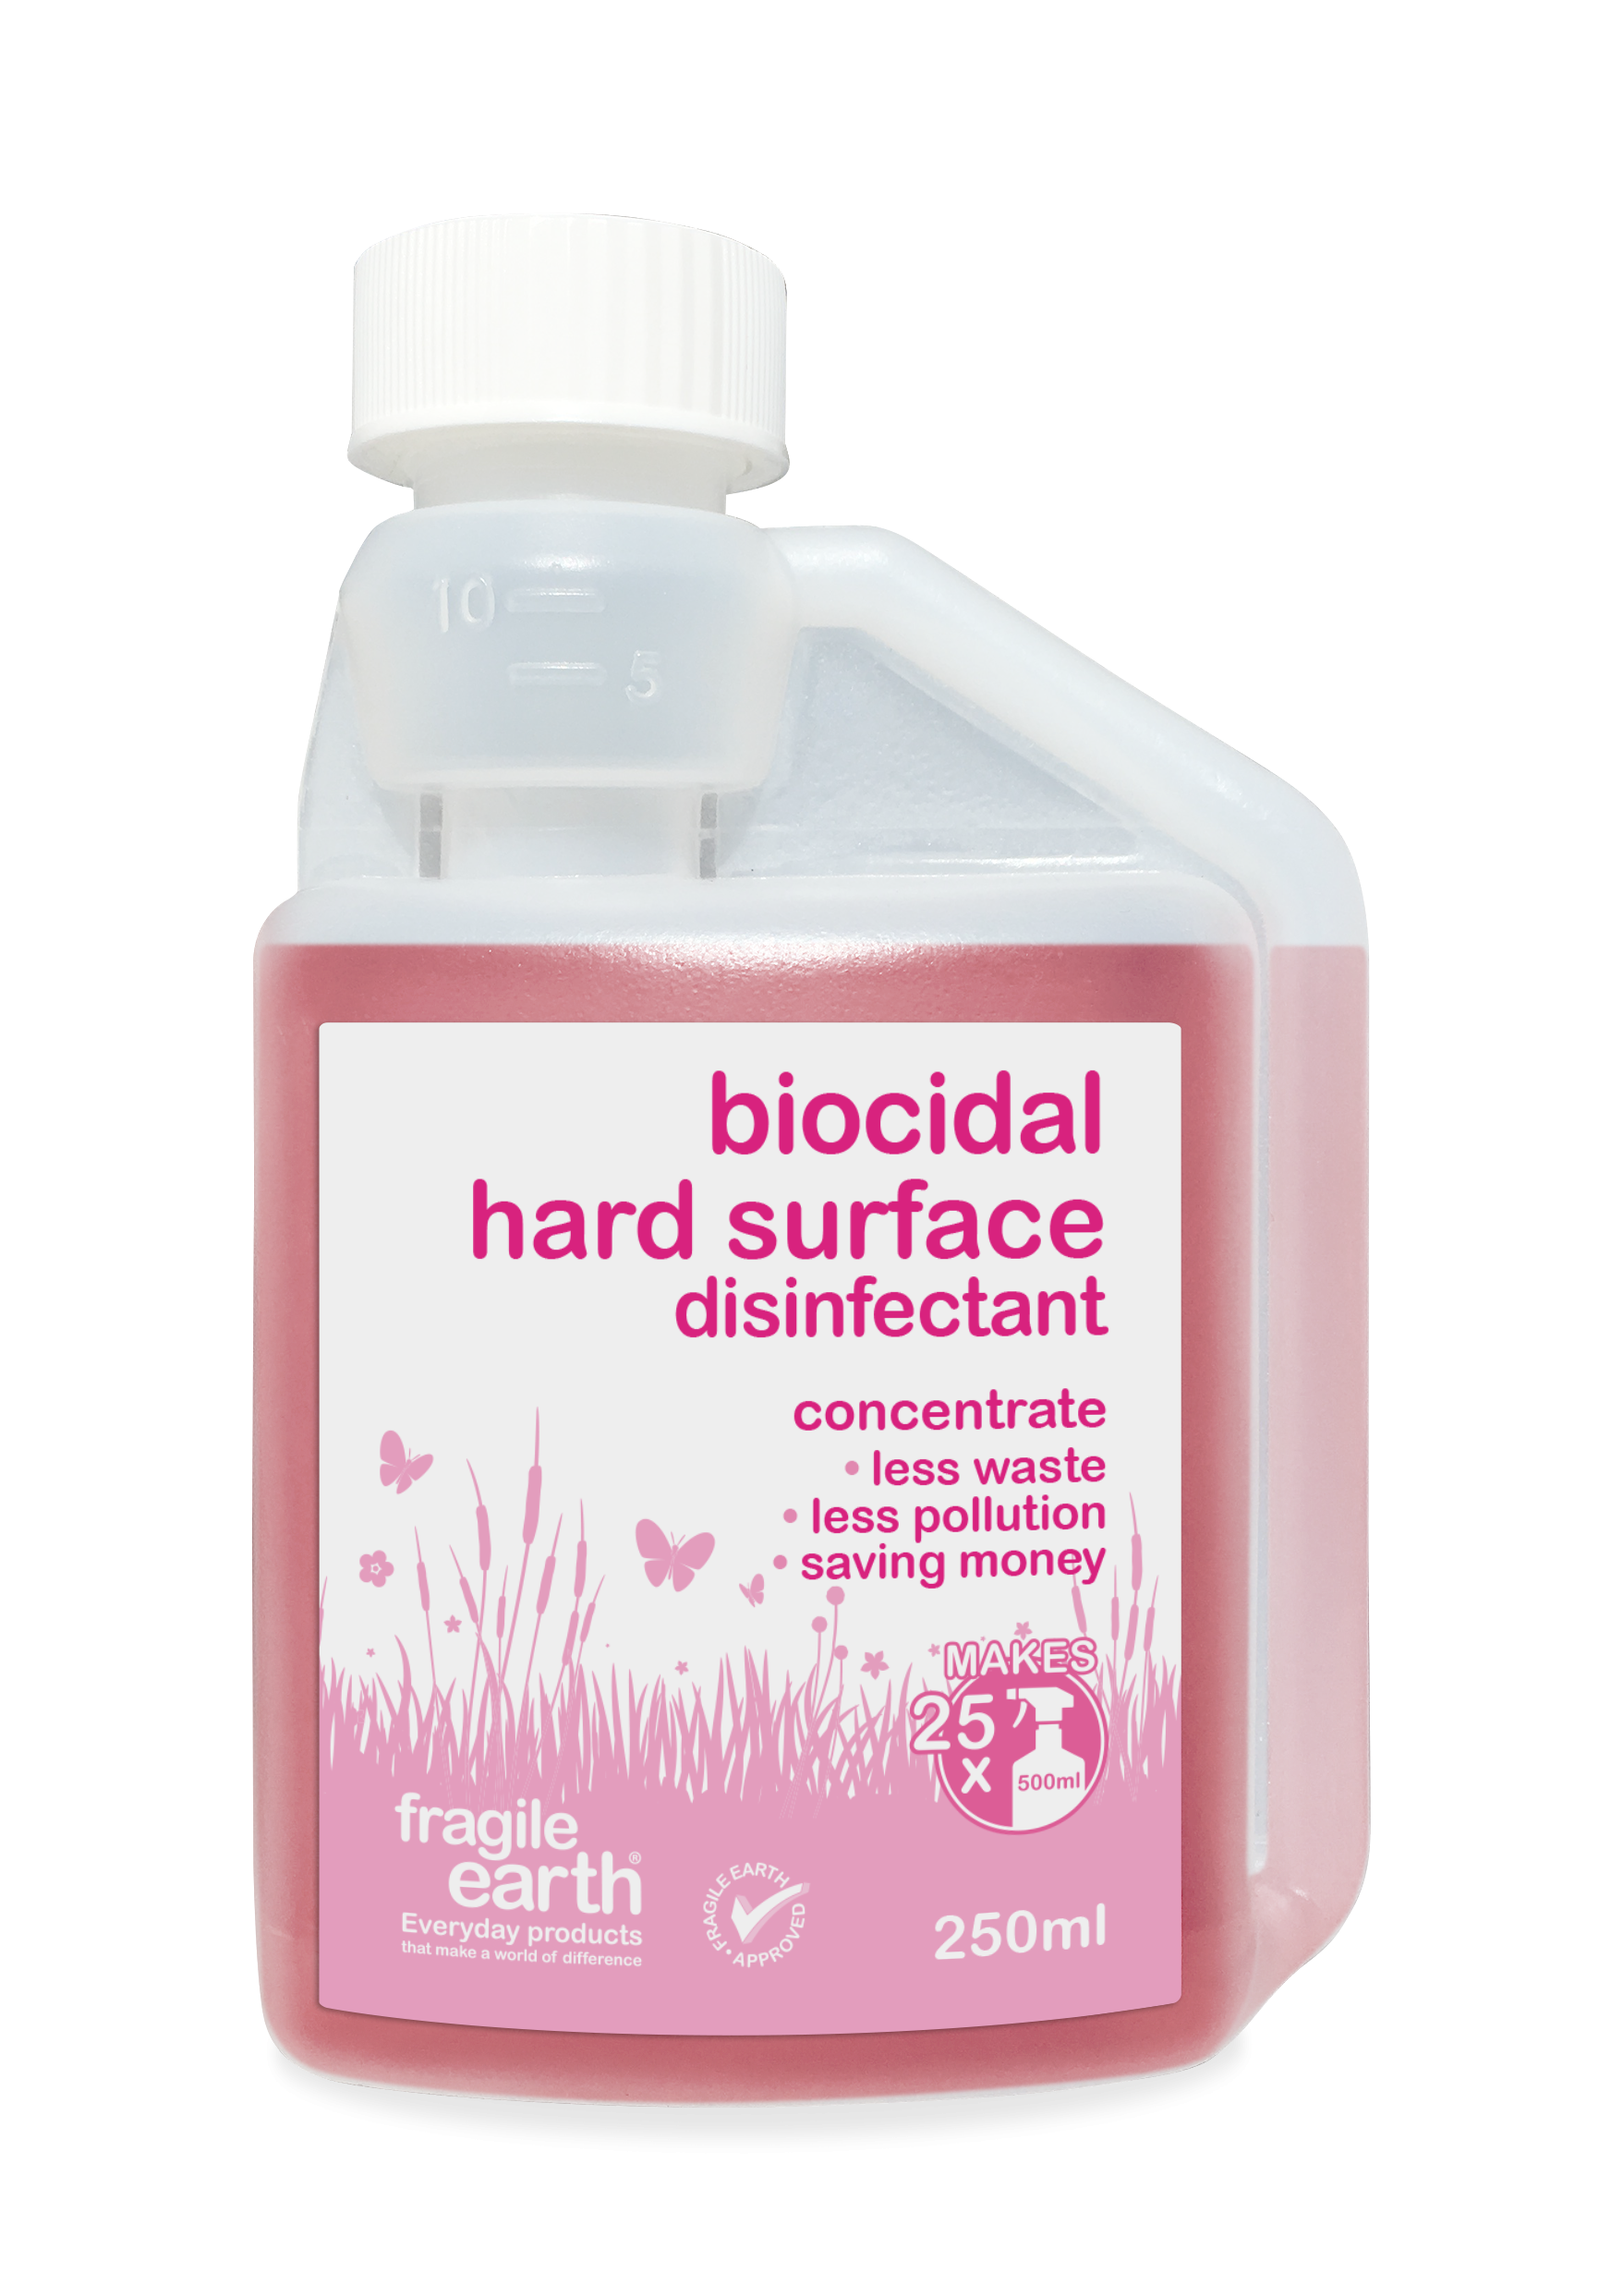 Fragile Earth Biocidal Hard Surface Disinfectant